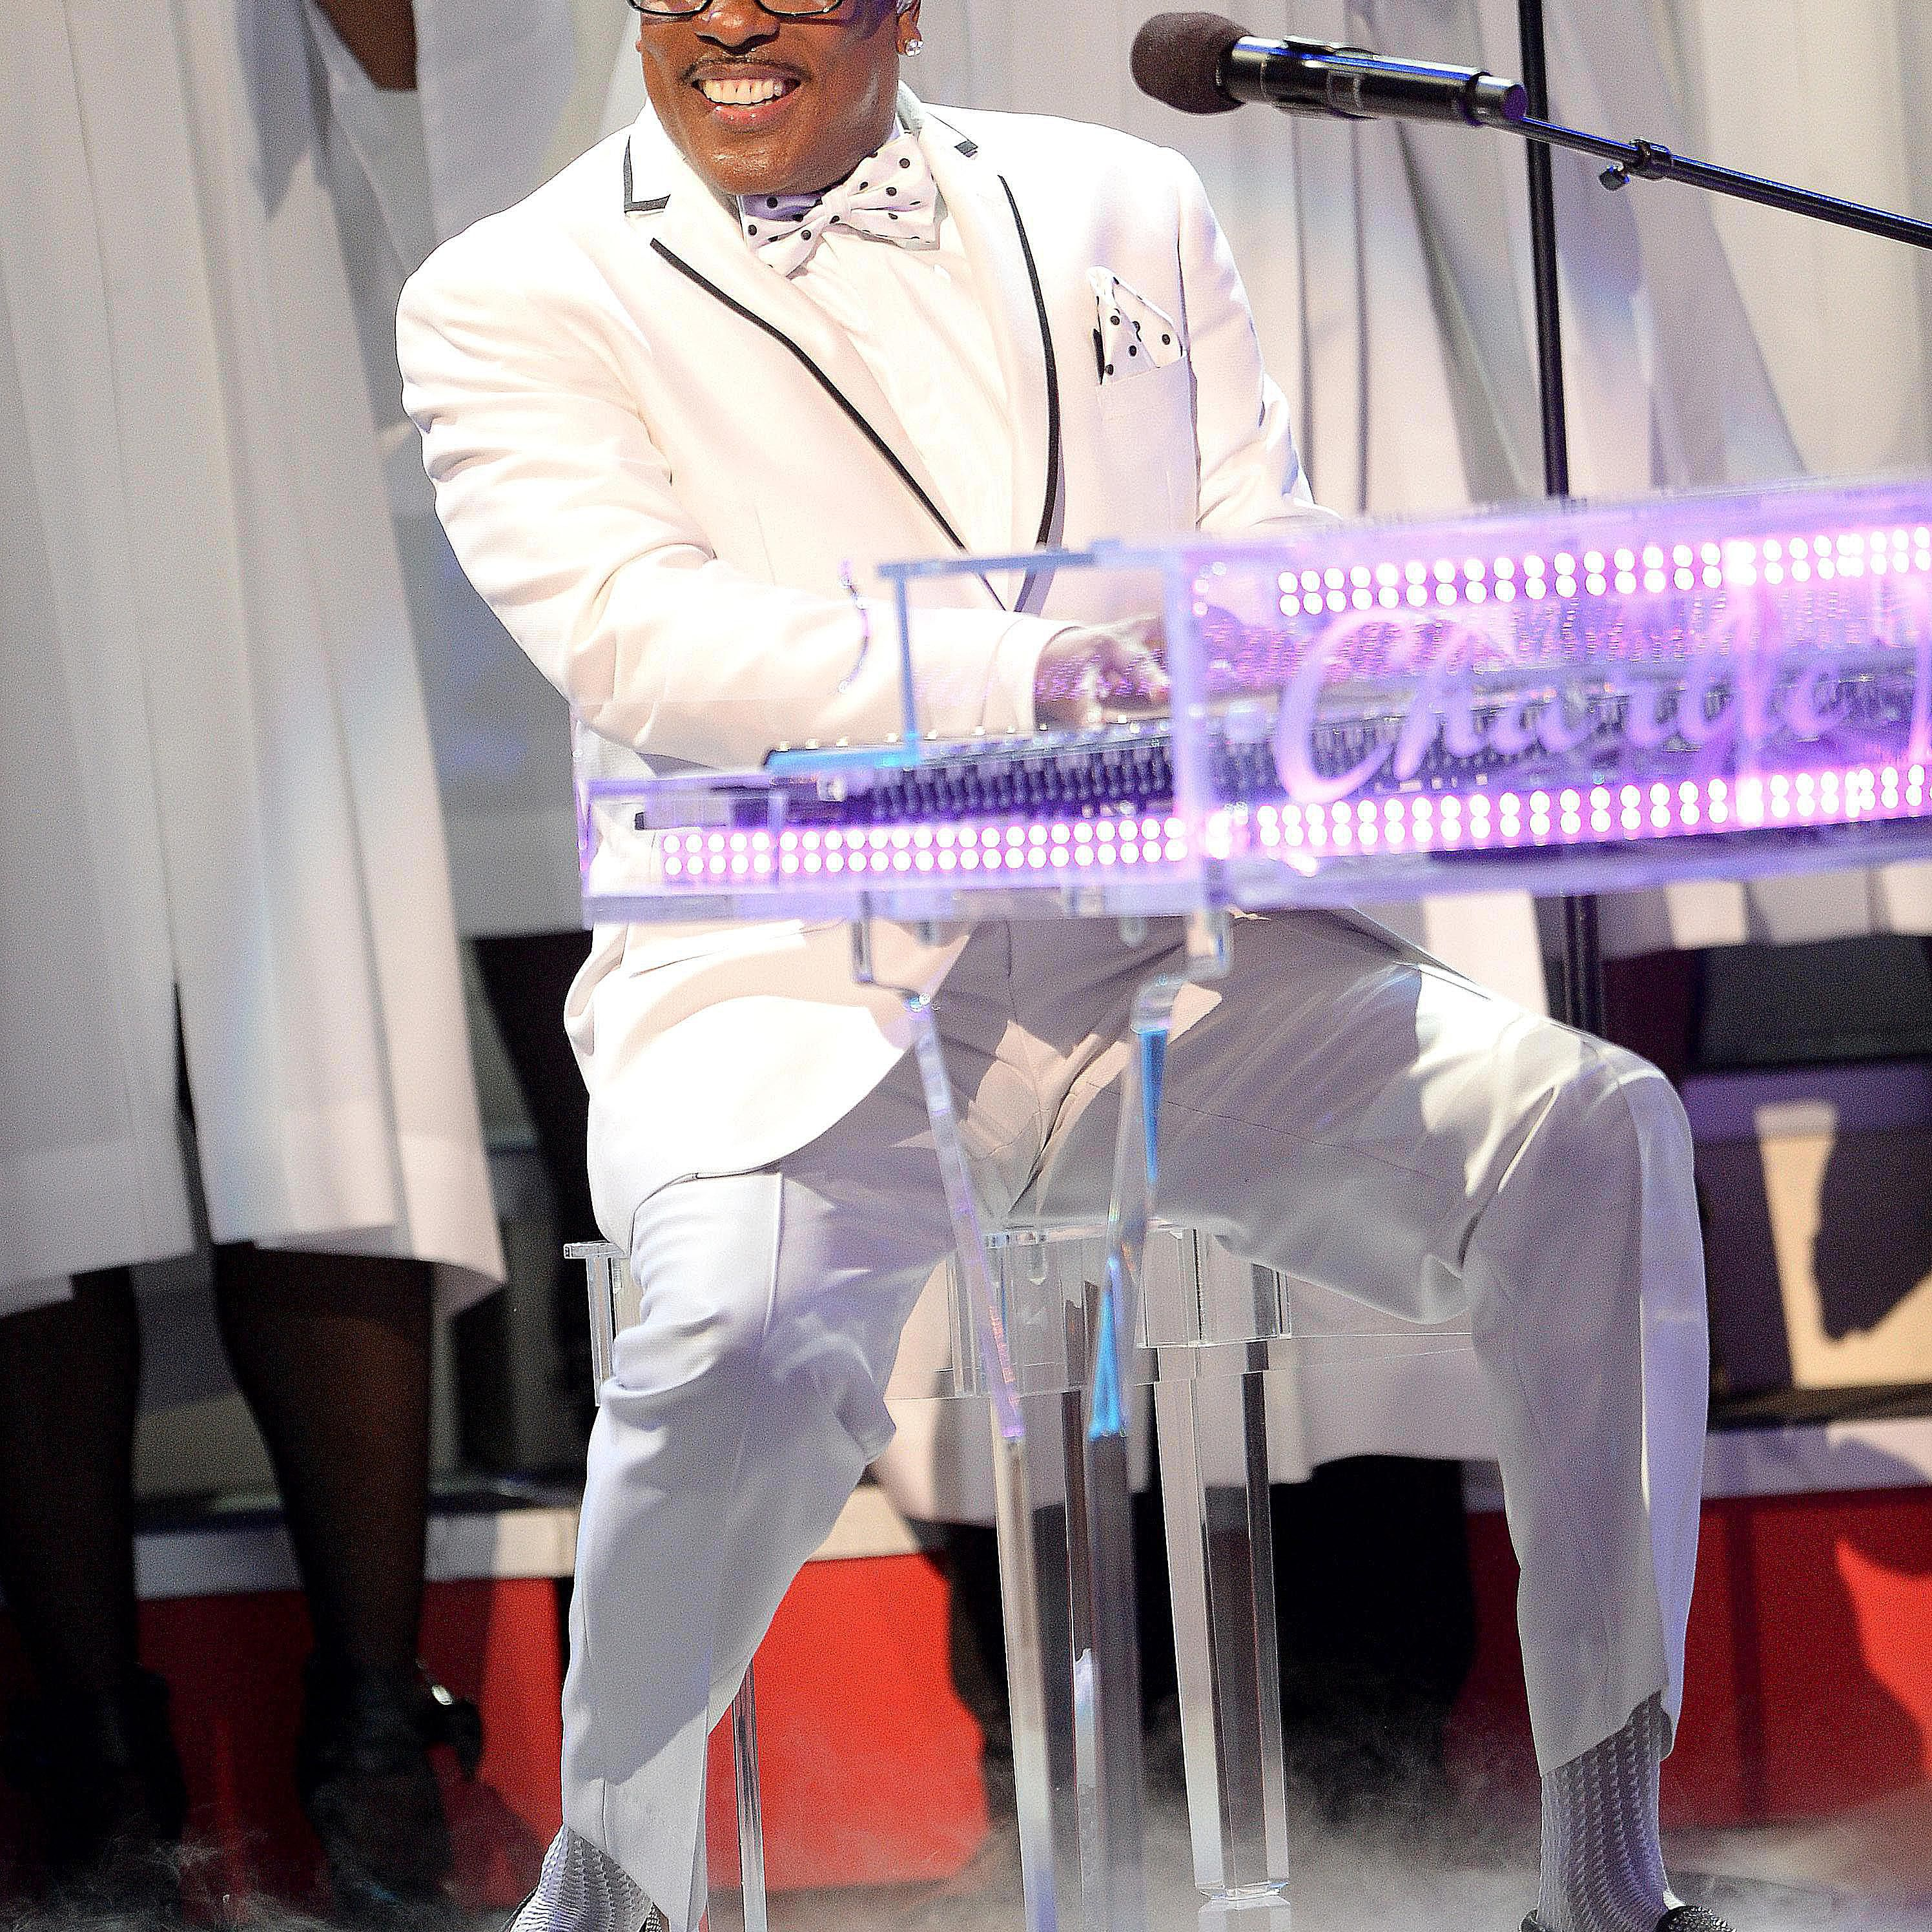 Charlie Wilson playing a clear acrylic piano